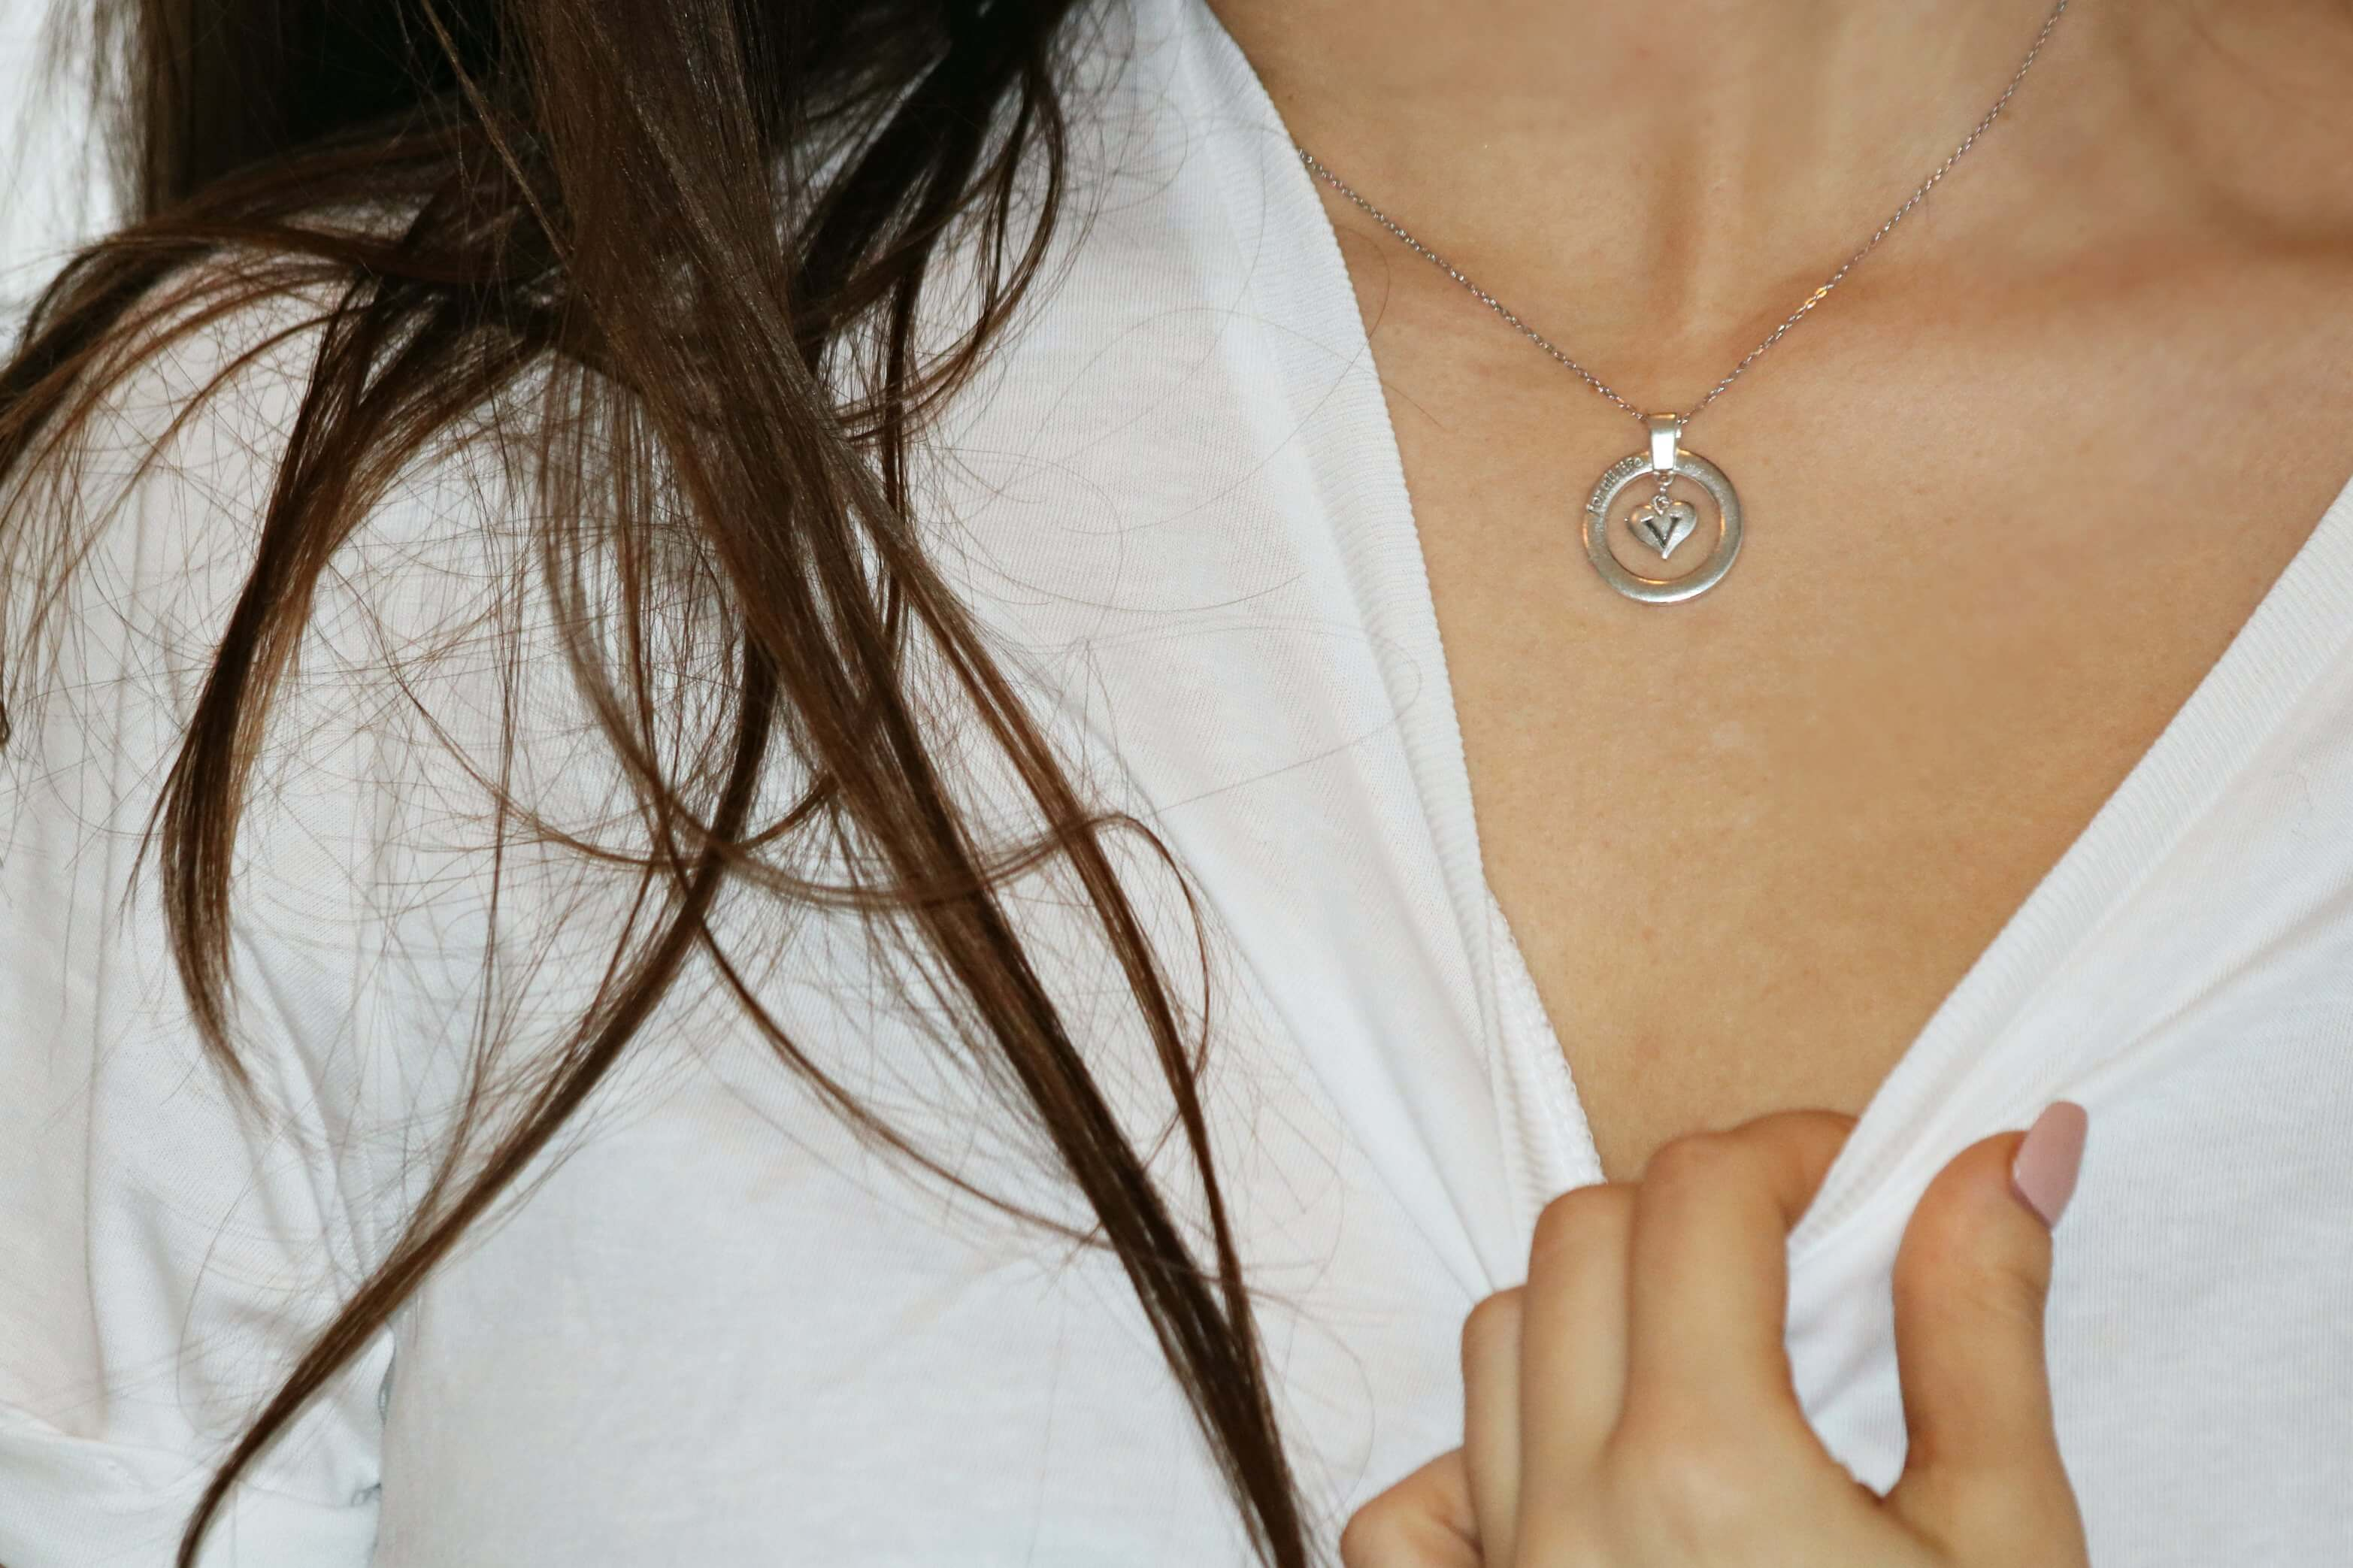 A Solid Silver Statement Necklace